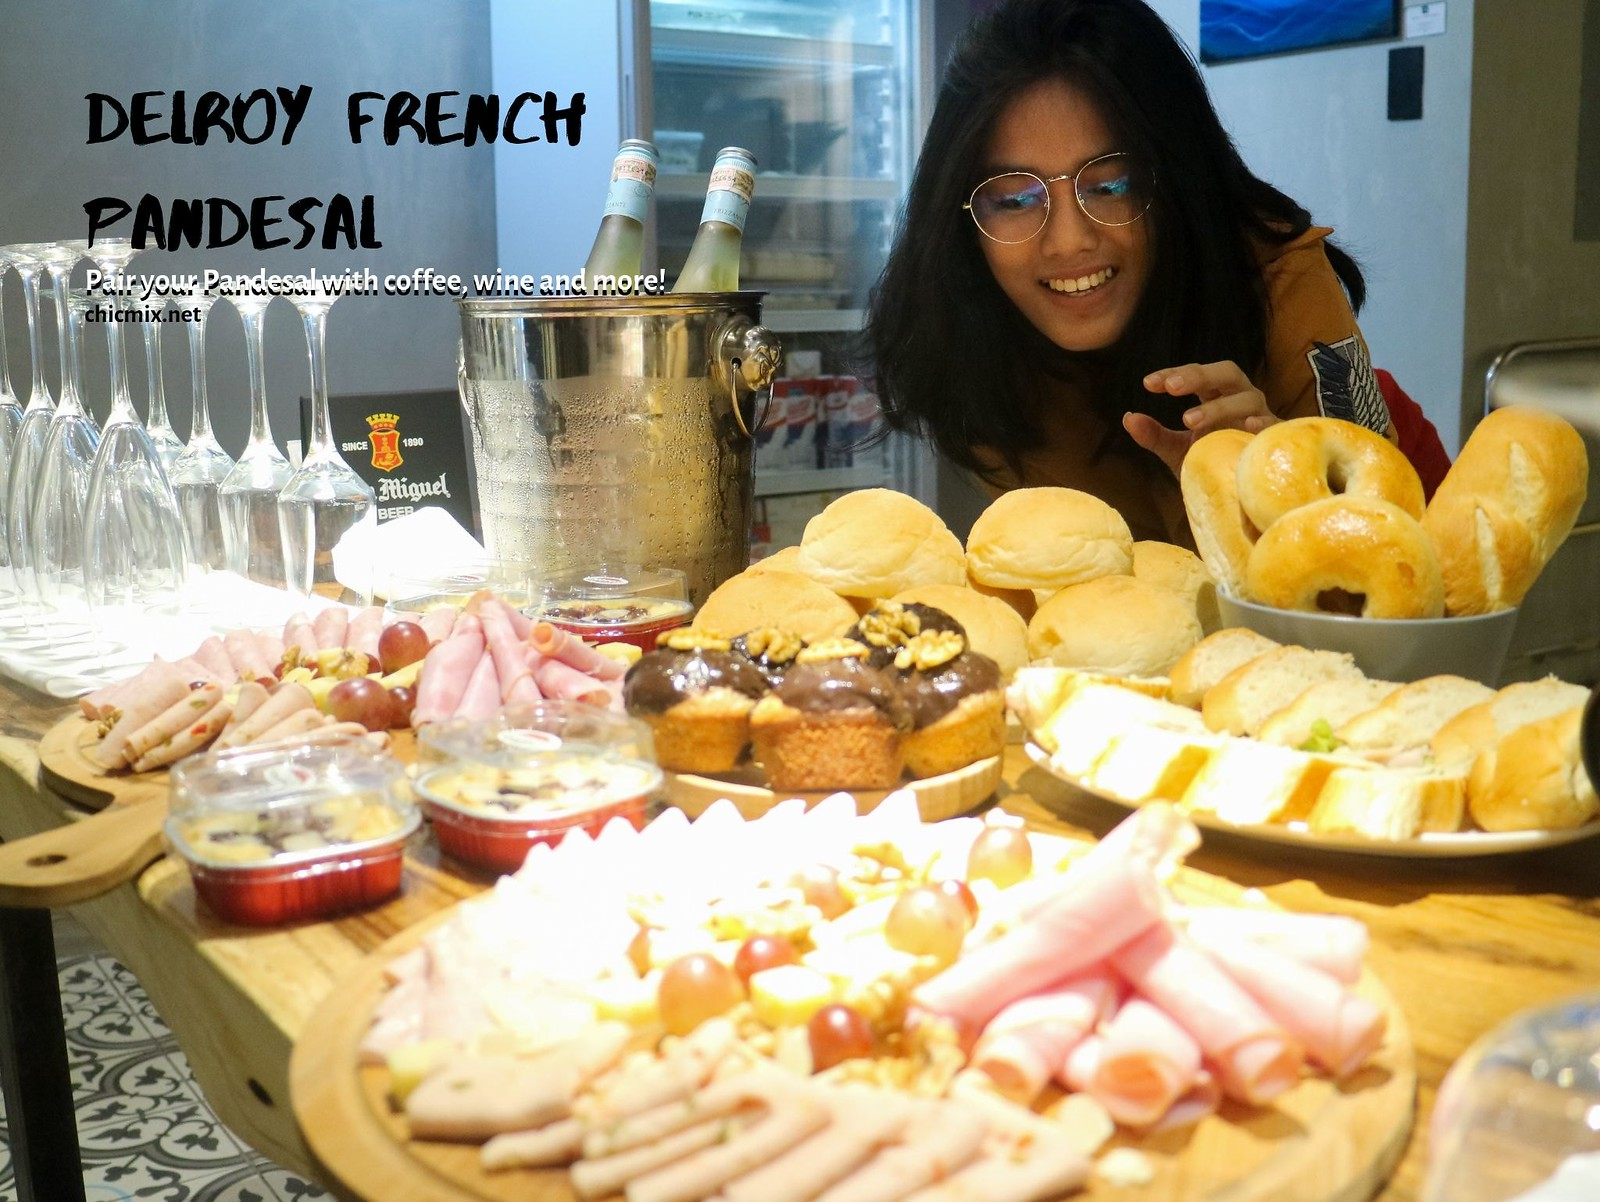 Delroy French Pandesal BF Paranaque